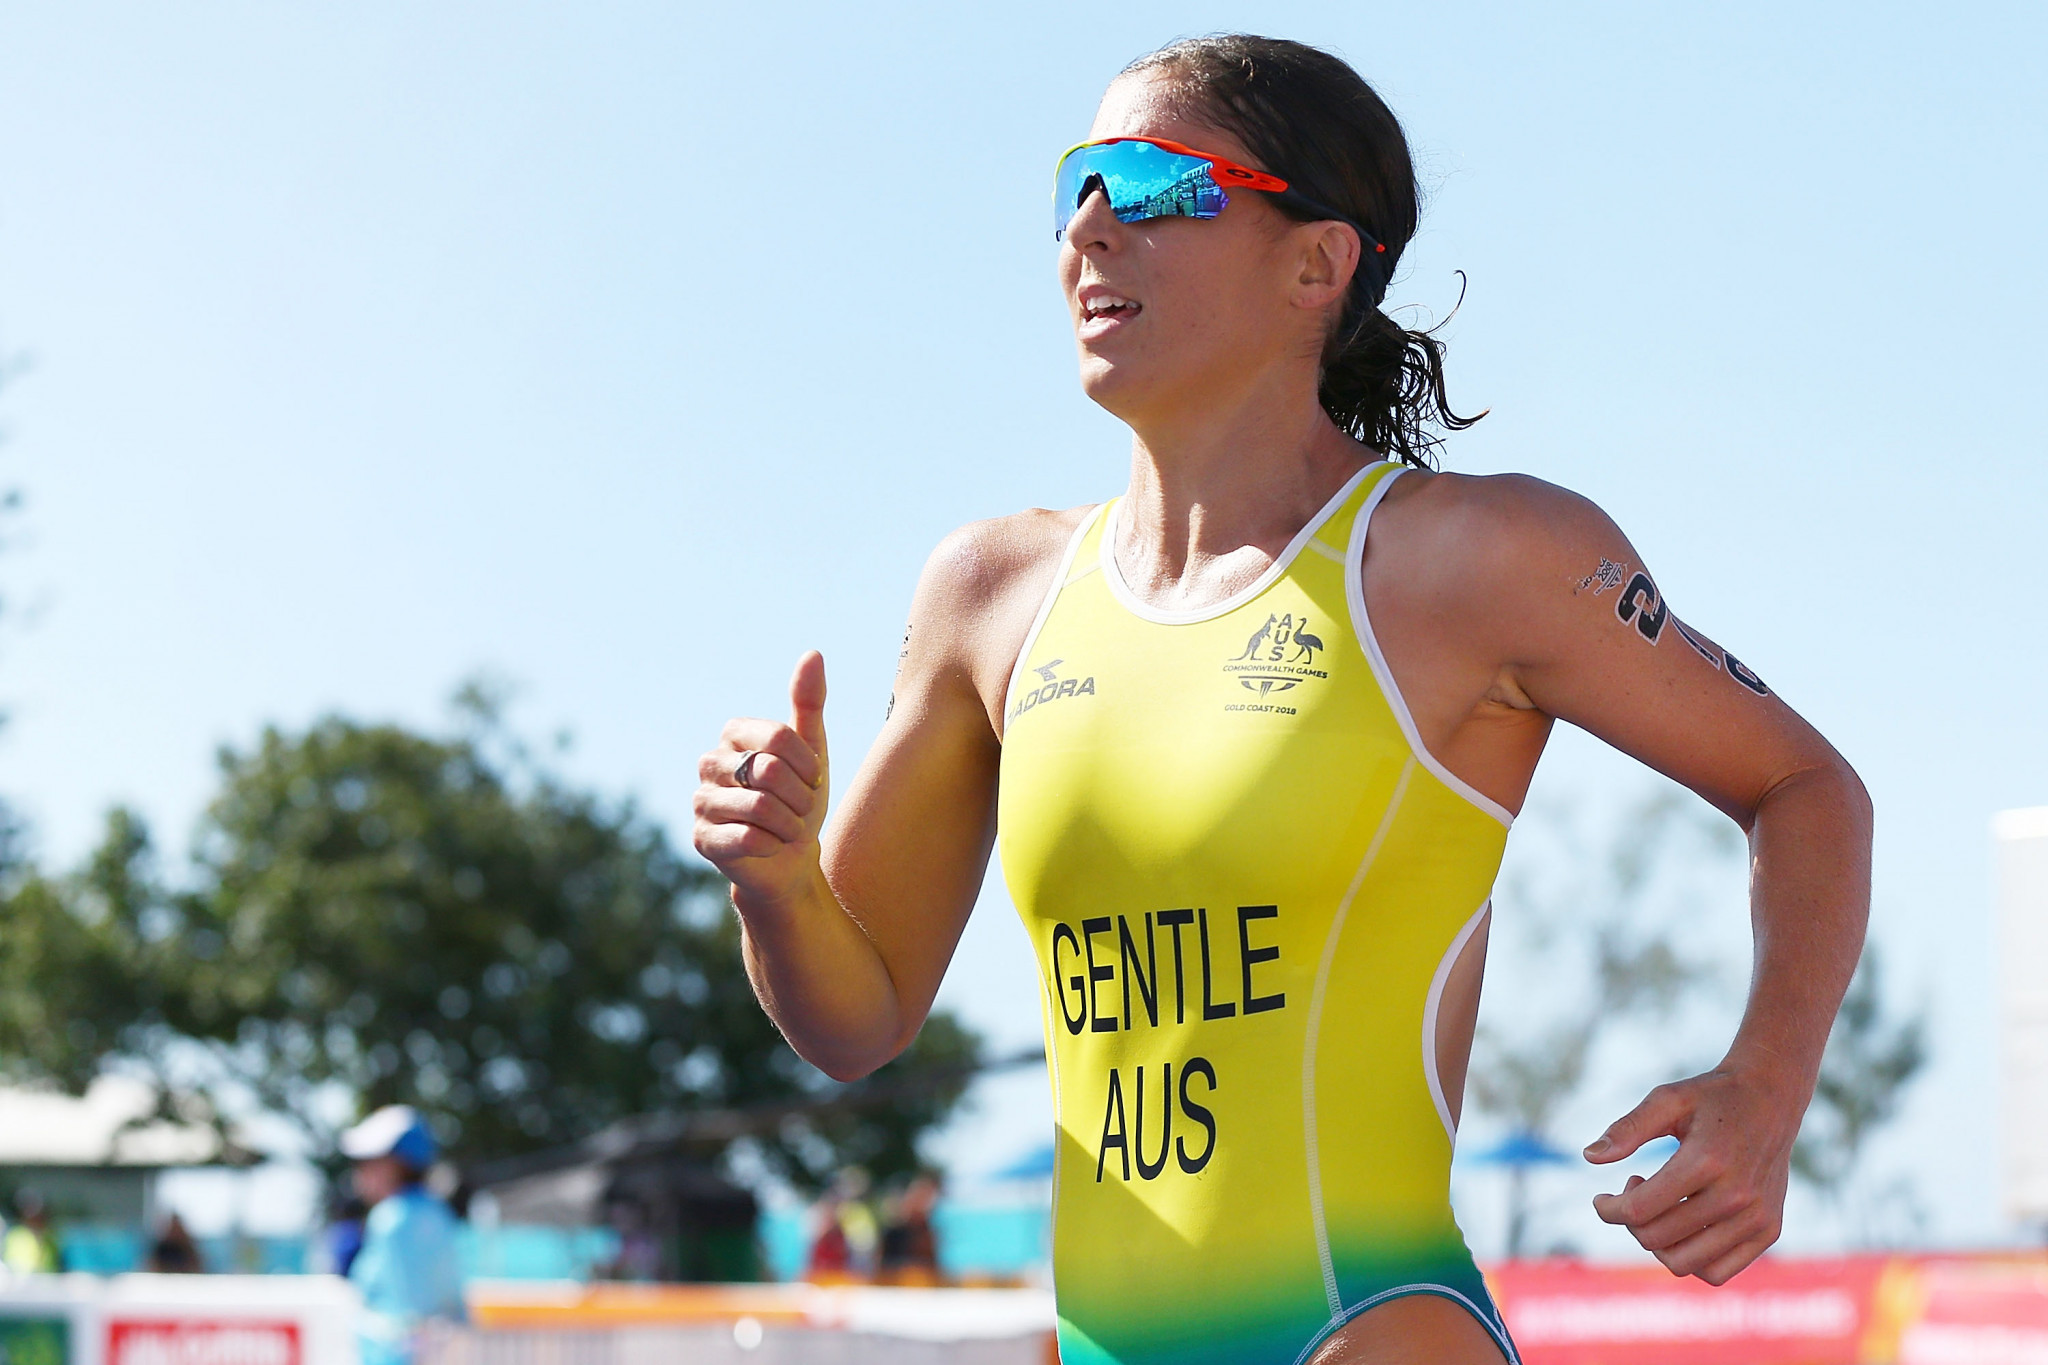 Gentle eyes repeat victory at ITU World Cup in Mooloolaba